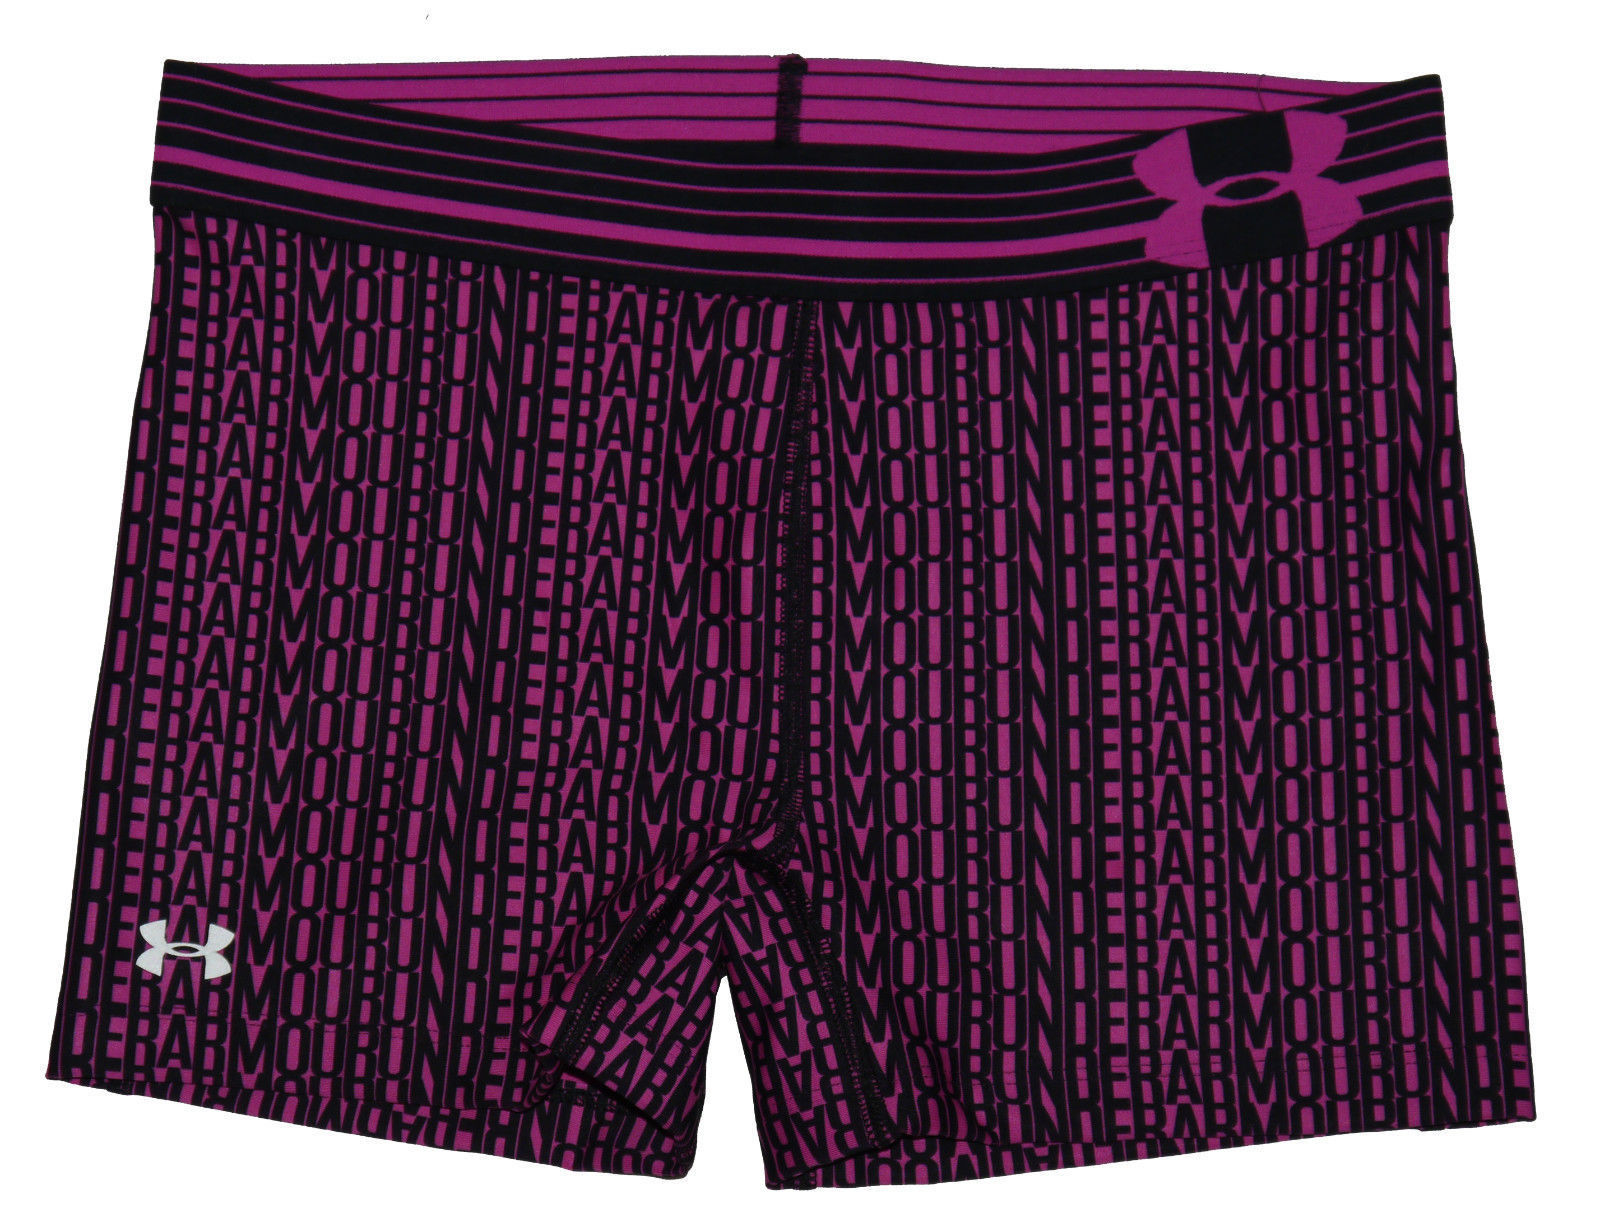 "Under Armour Women's Black/Rebel Pink UA 3"" Shorty Compression Shorts (Small) 13269"